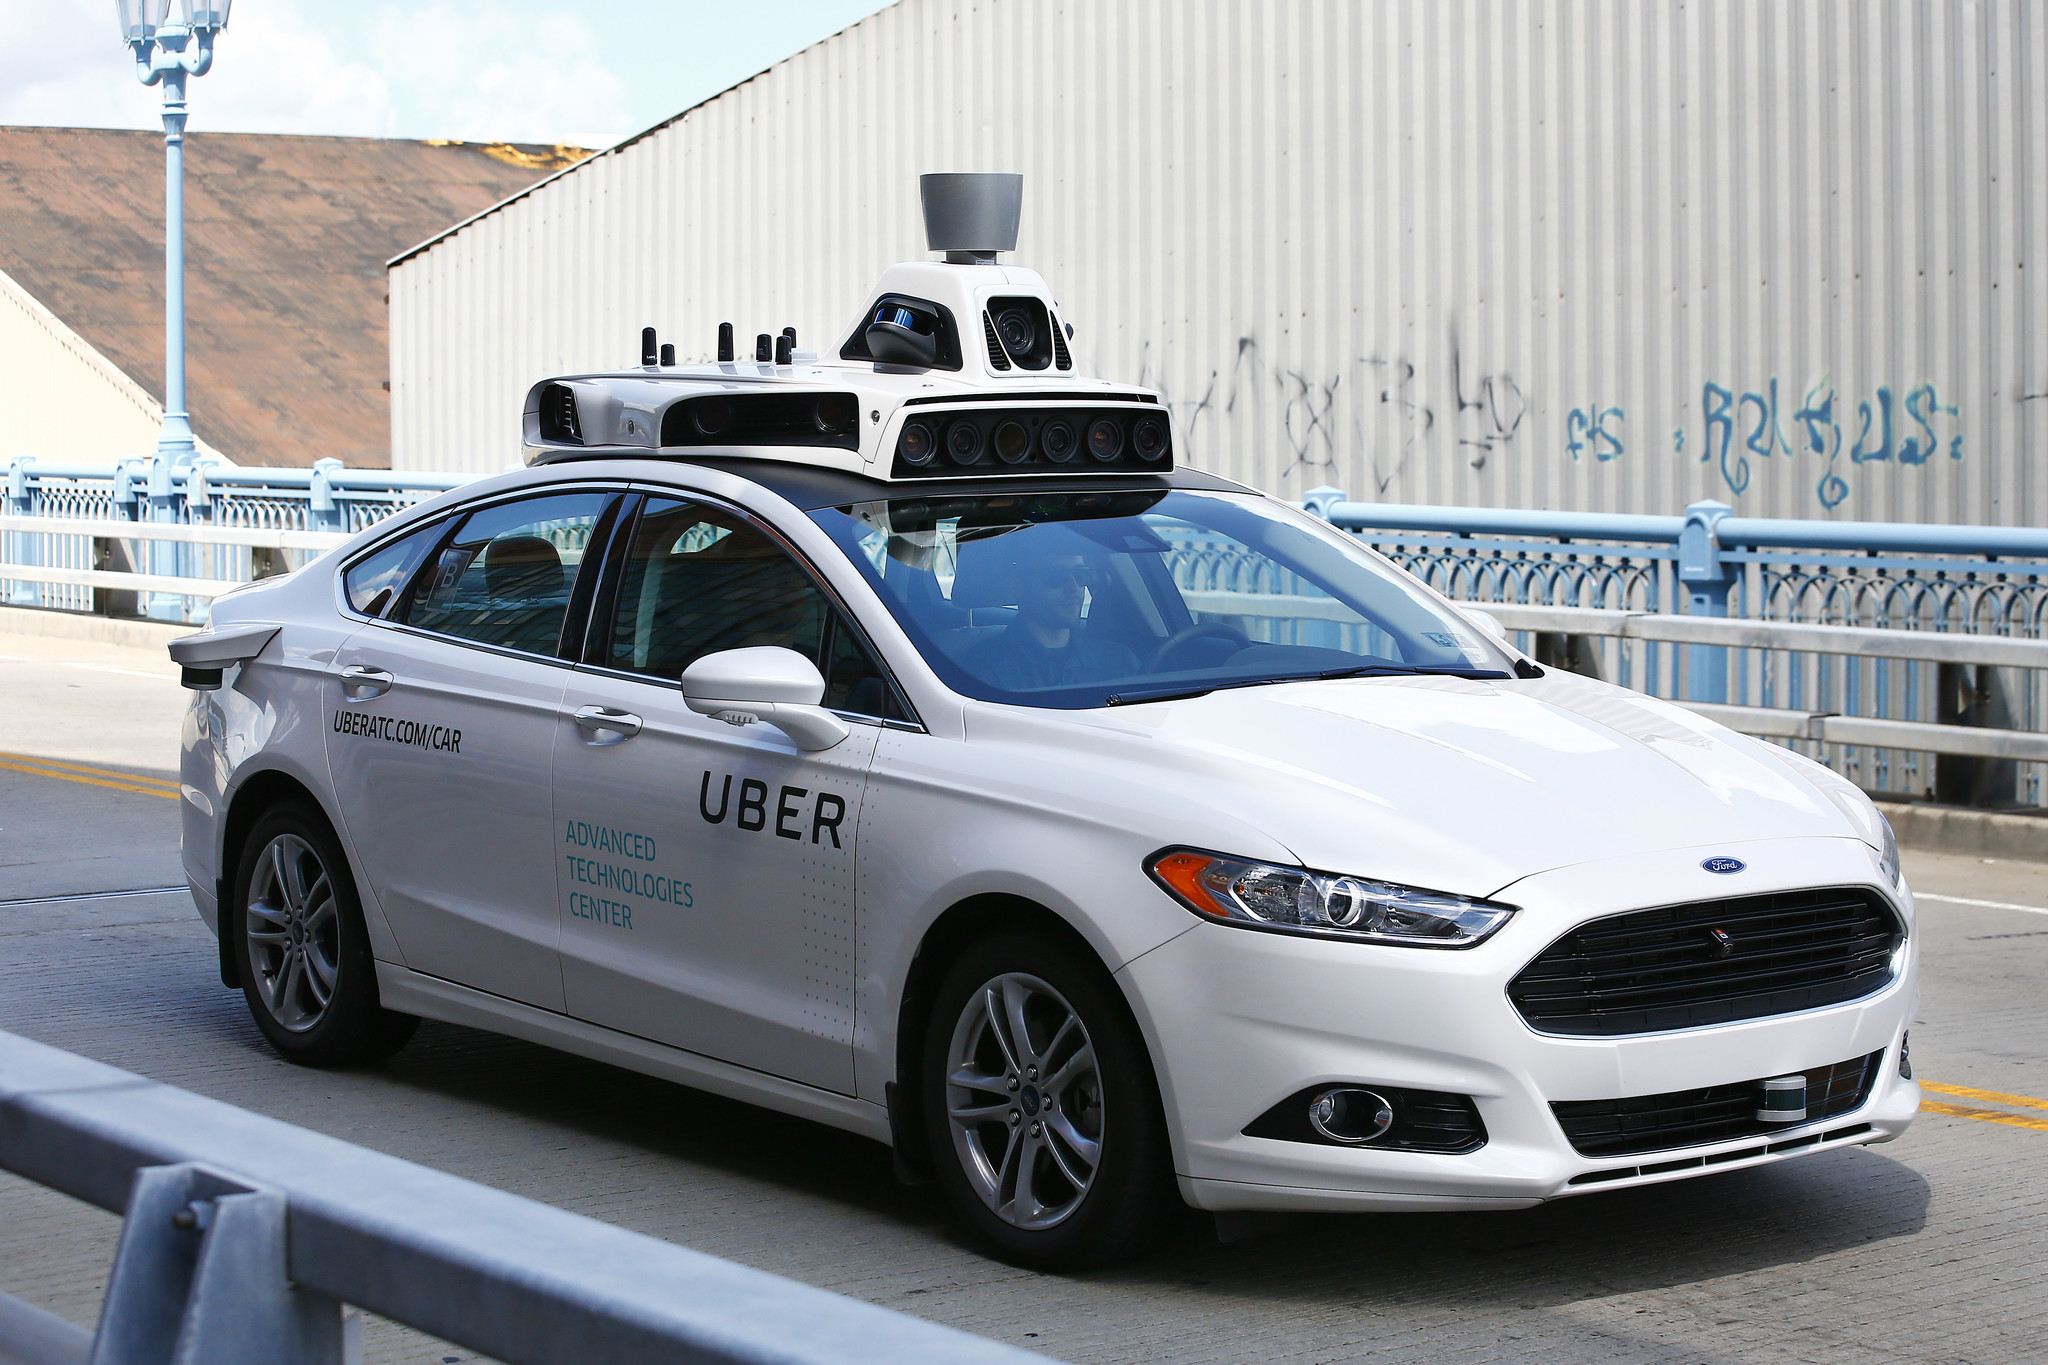 Uber To Introduce Self Driving Cars Its Fleet In Coming Weeks Chicago Tribune